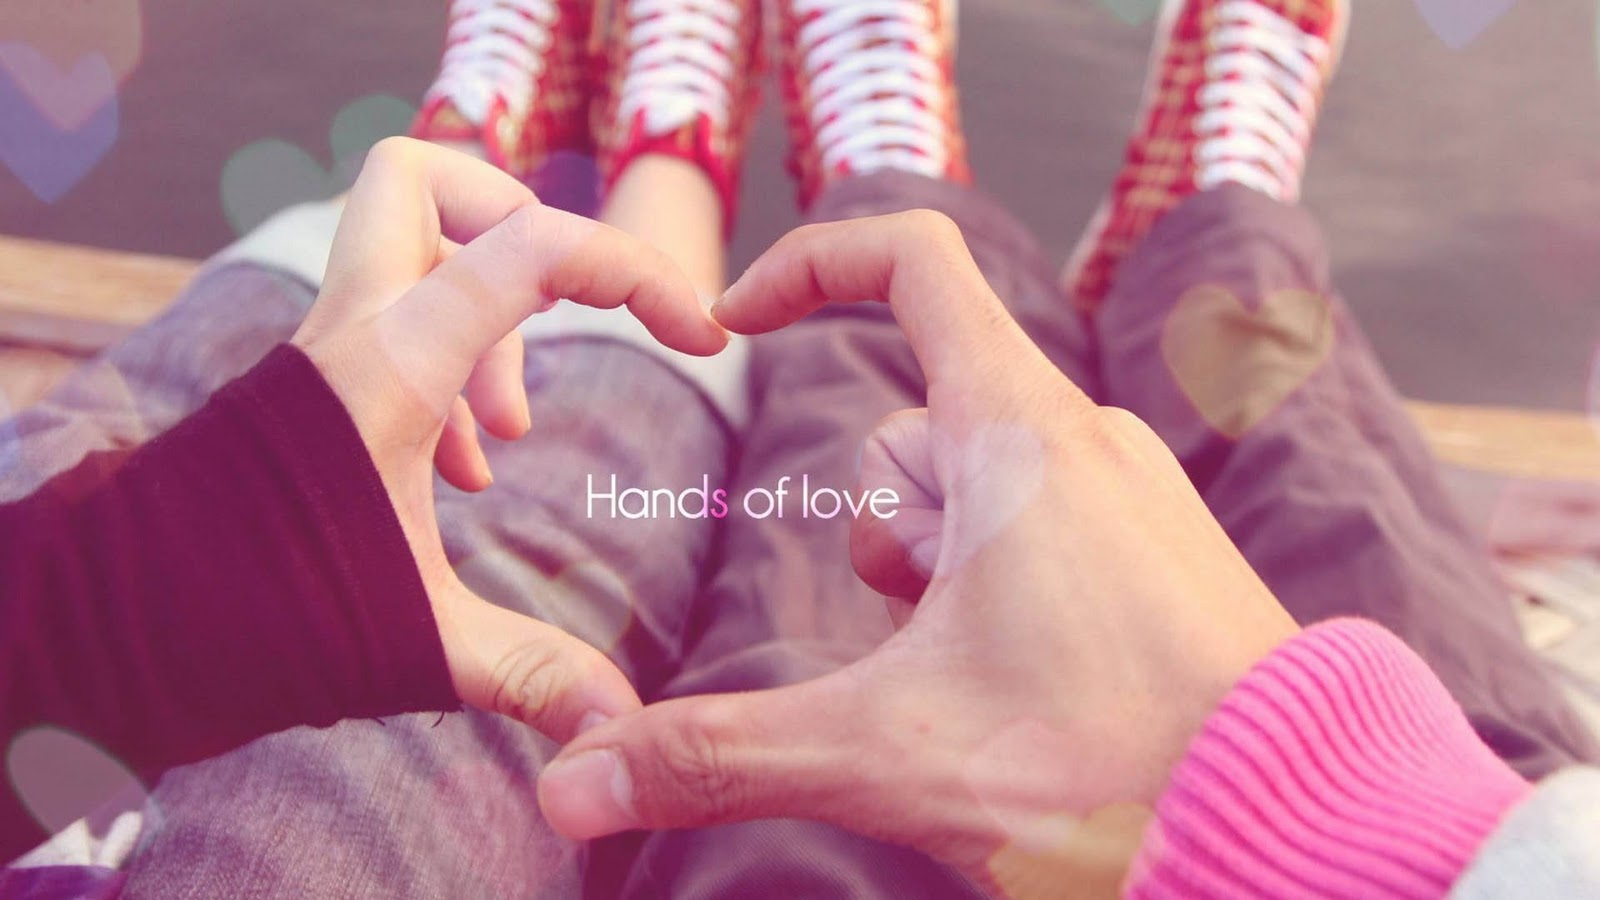 Sad Boy And Girl Love Wallpaper Hd Sitting Close Up Hands Heart Day Lovers Couple Hd